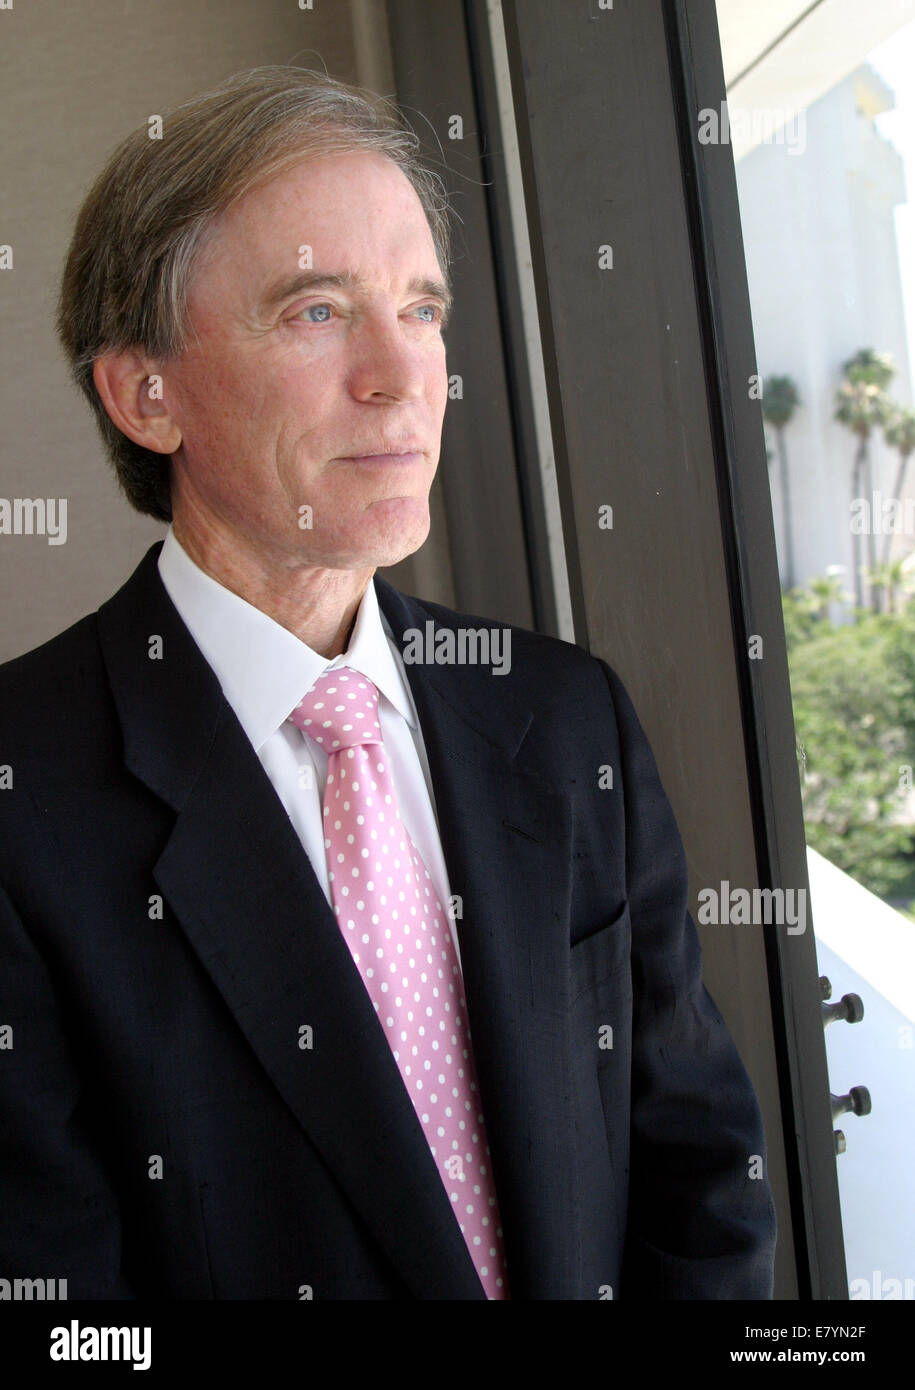 Bill Gross, founder of bond giant PIMCO, has left his post as chief investment officer at the company and joined - Stock Image